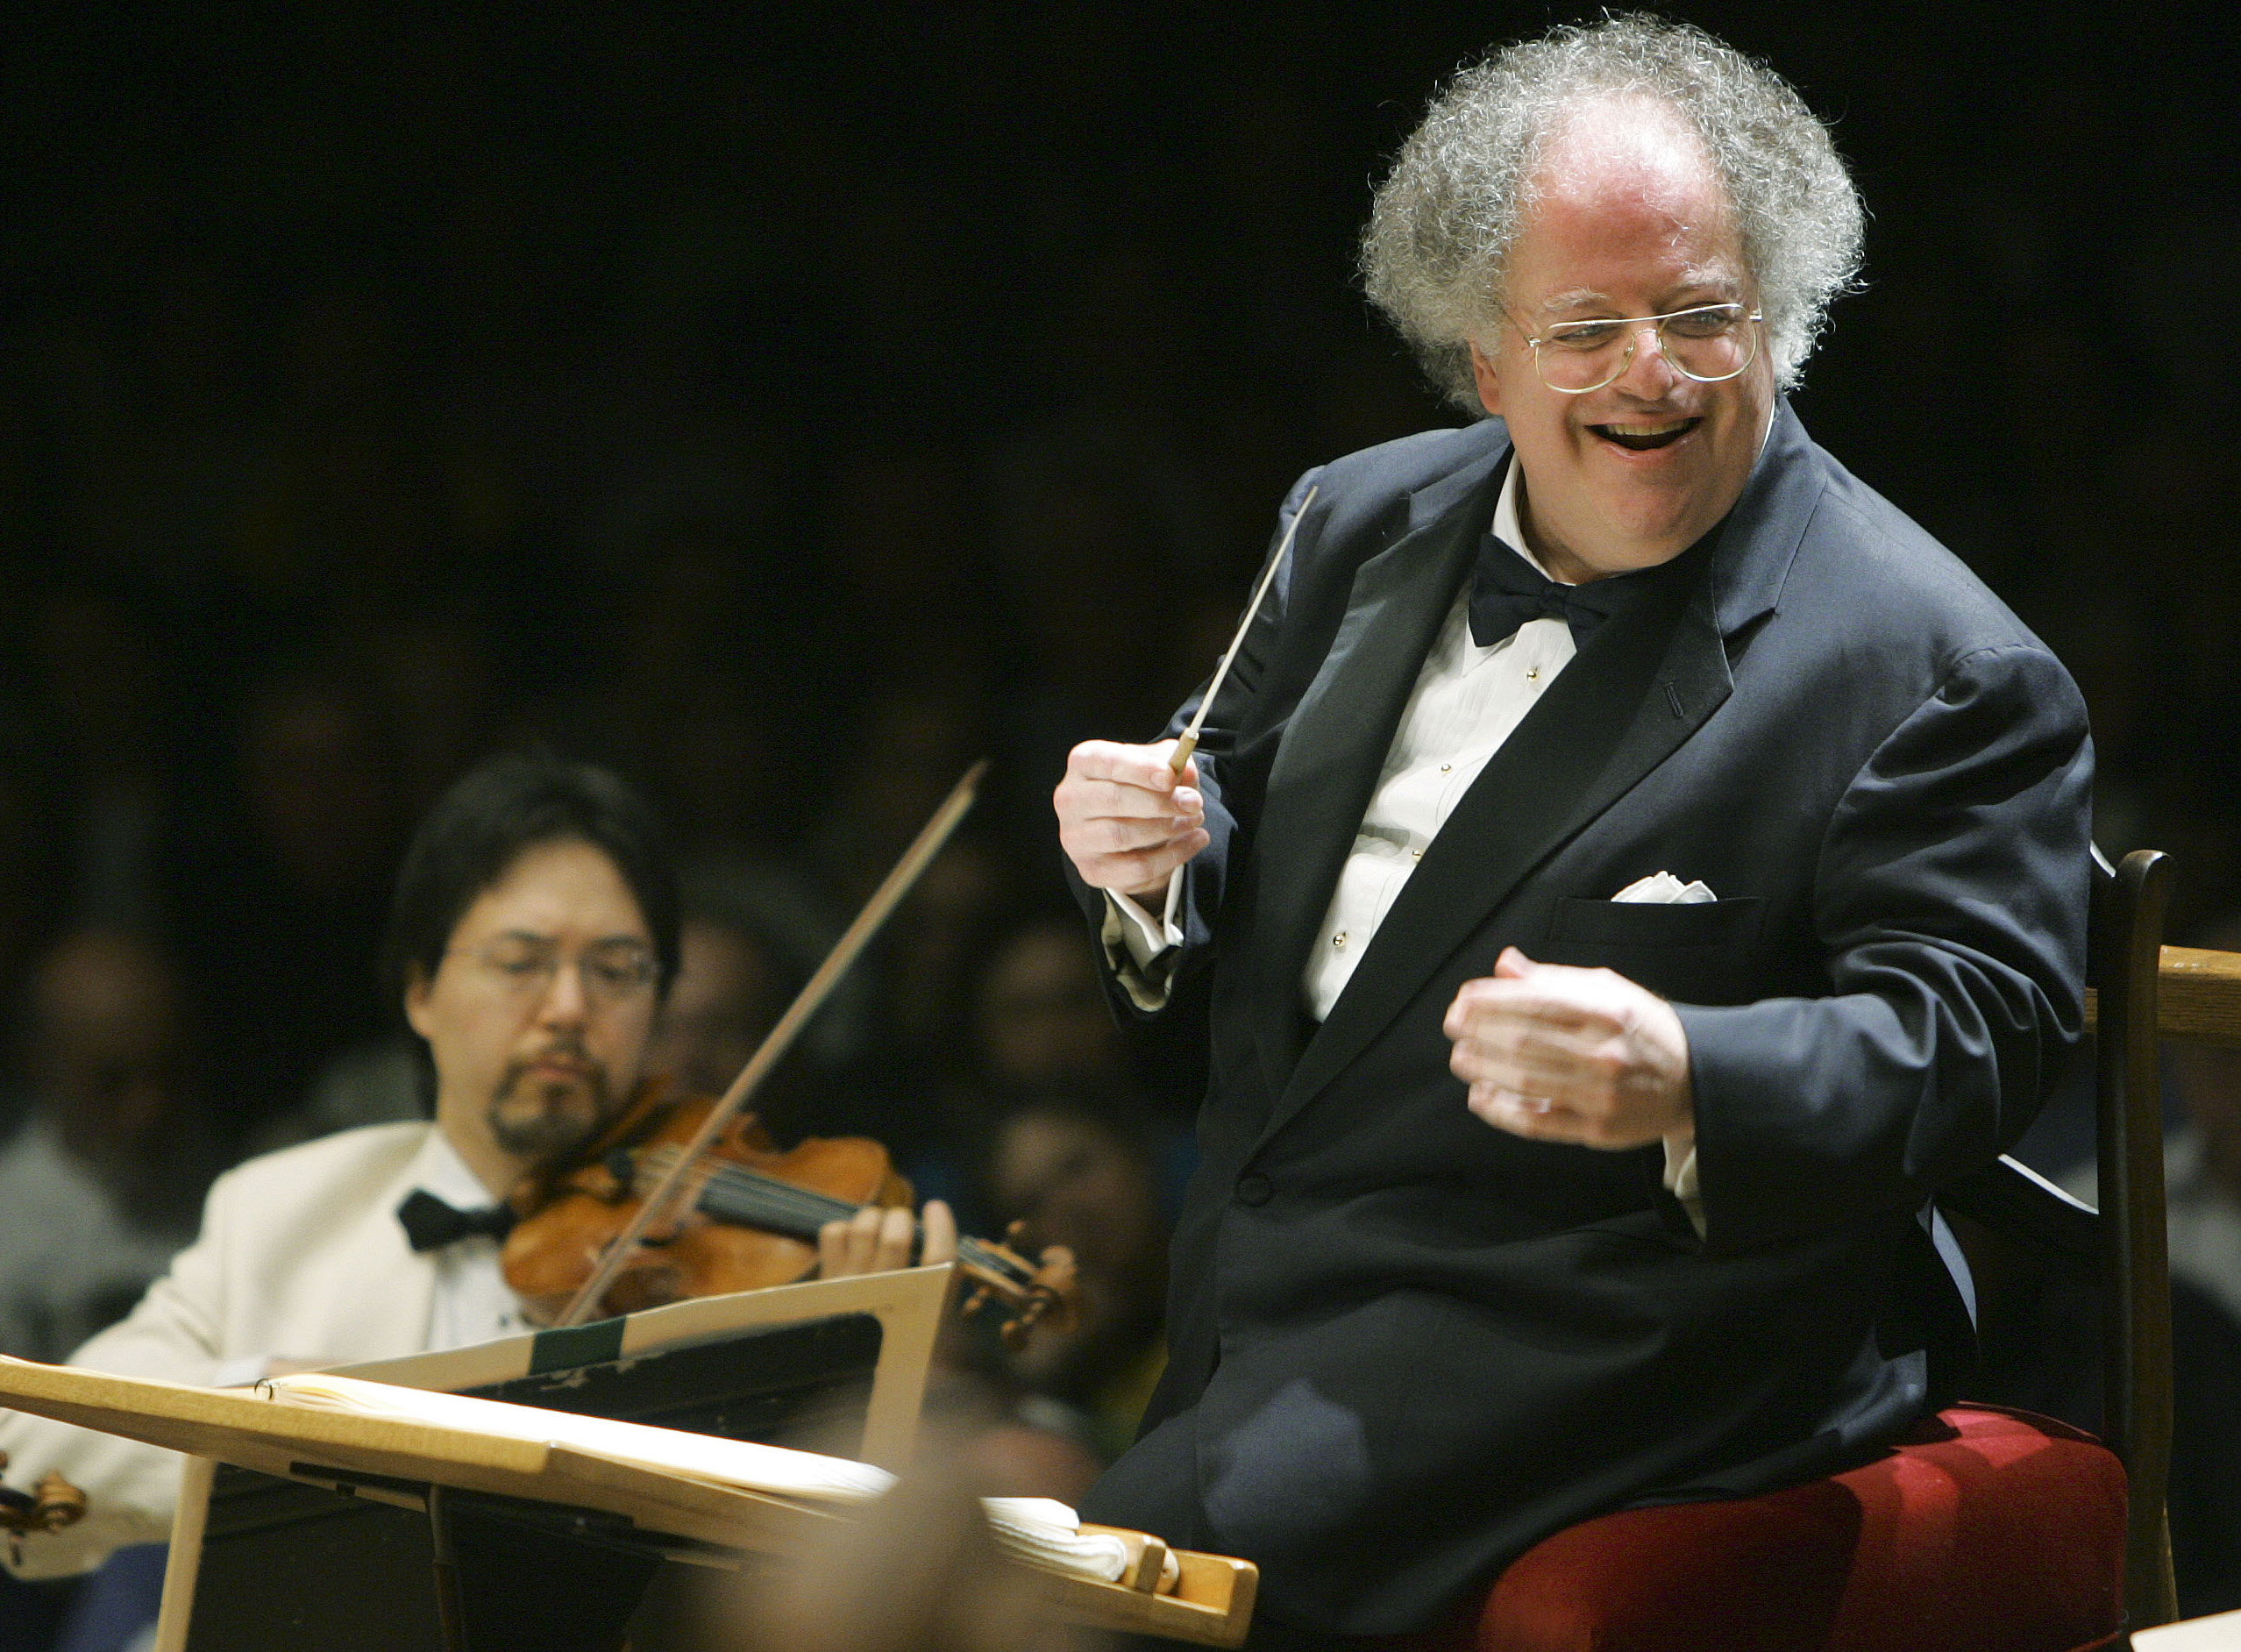 In this July 2006 file photo, Boston Symphony Orchestra music director James Levine, right, is shown conducting the symphony on its opening night perf...